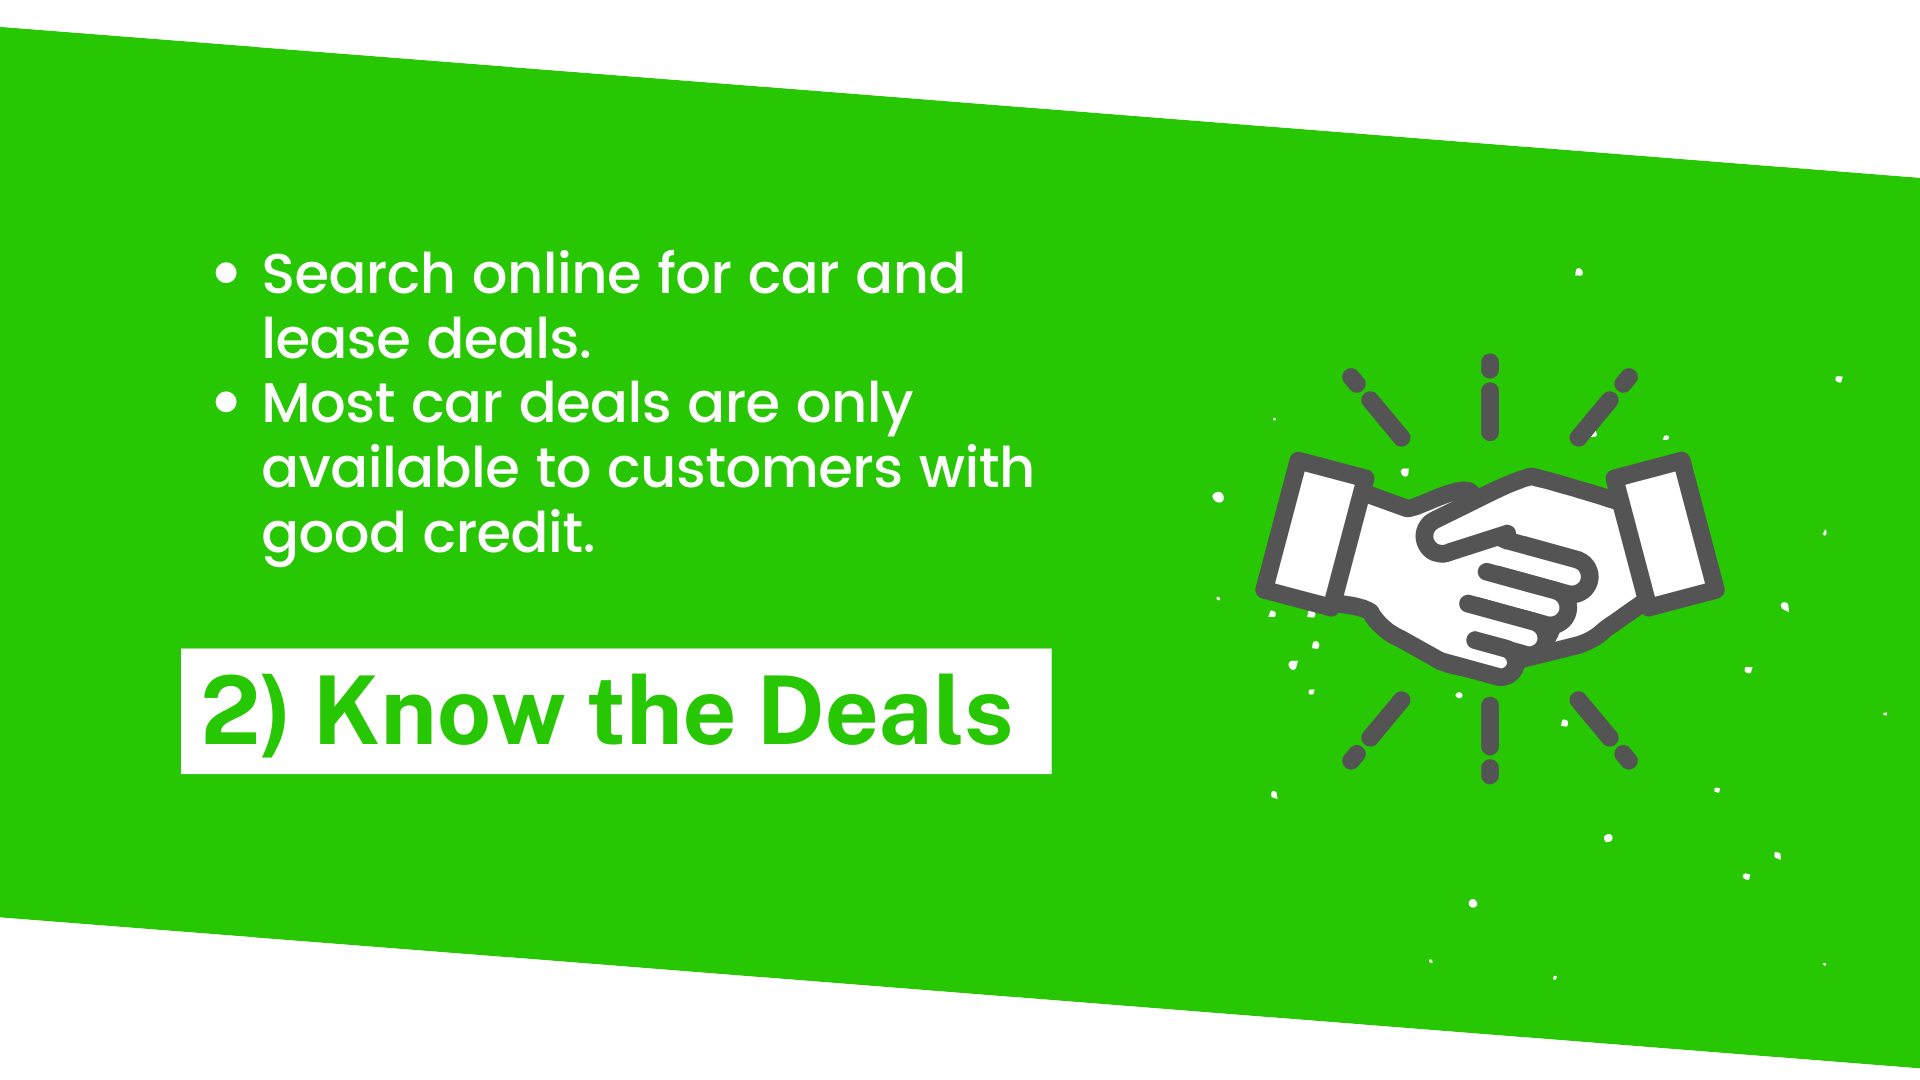 Search online for car and lease deals. Most car deals are only available to customers with good credit.